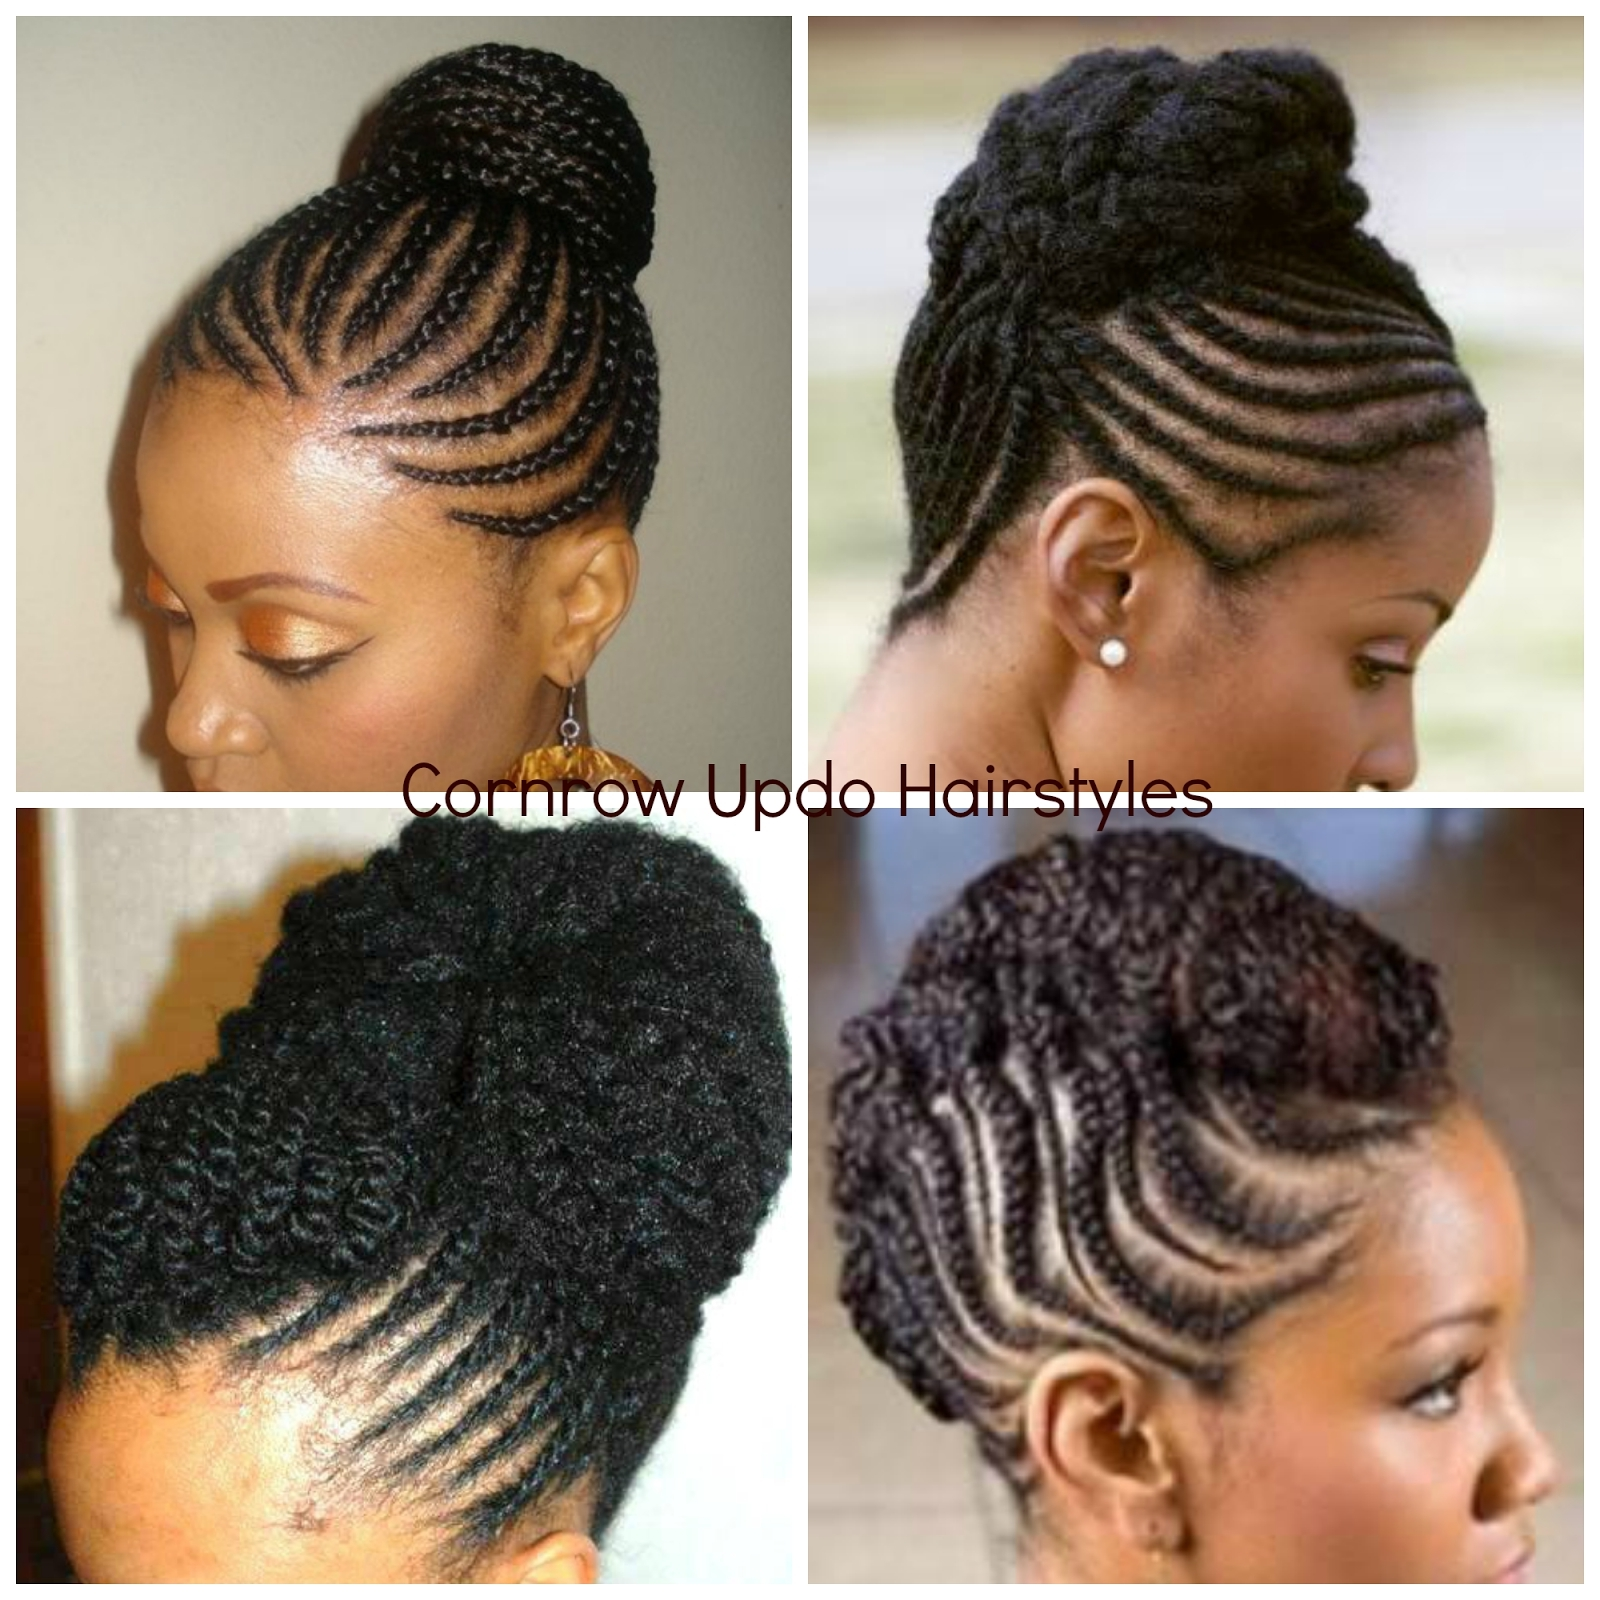 Photo: African American Cornrow Updo Hairstyles Cornrow Hairstyles Throughout Cornrow Updo Hairstyles For Black Women (View 13 of 15)